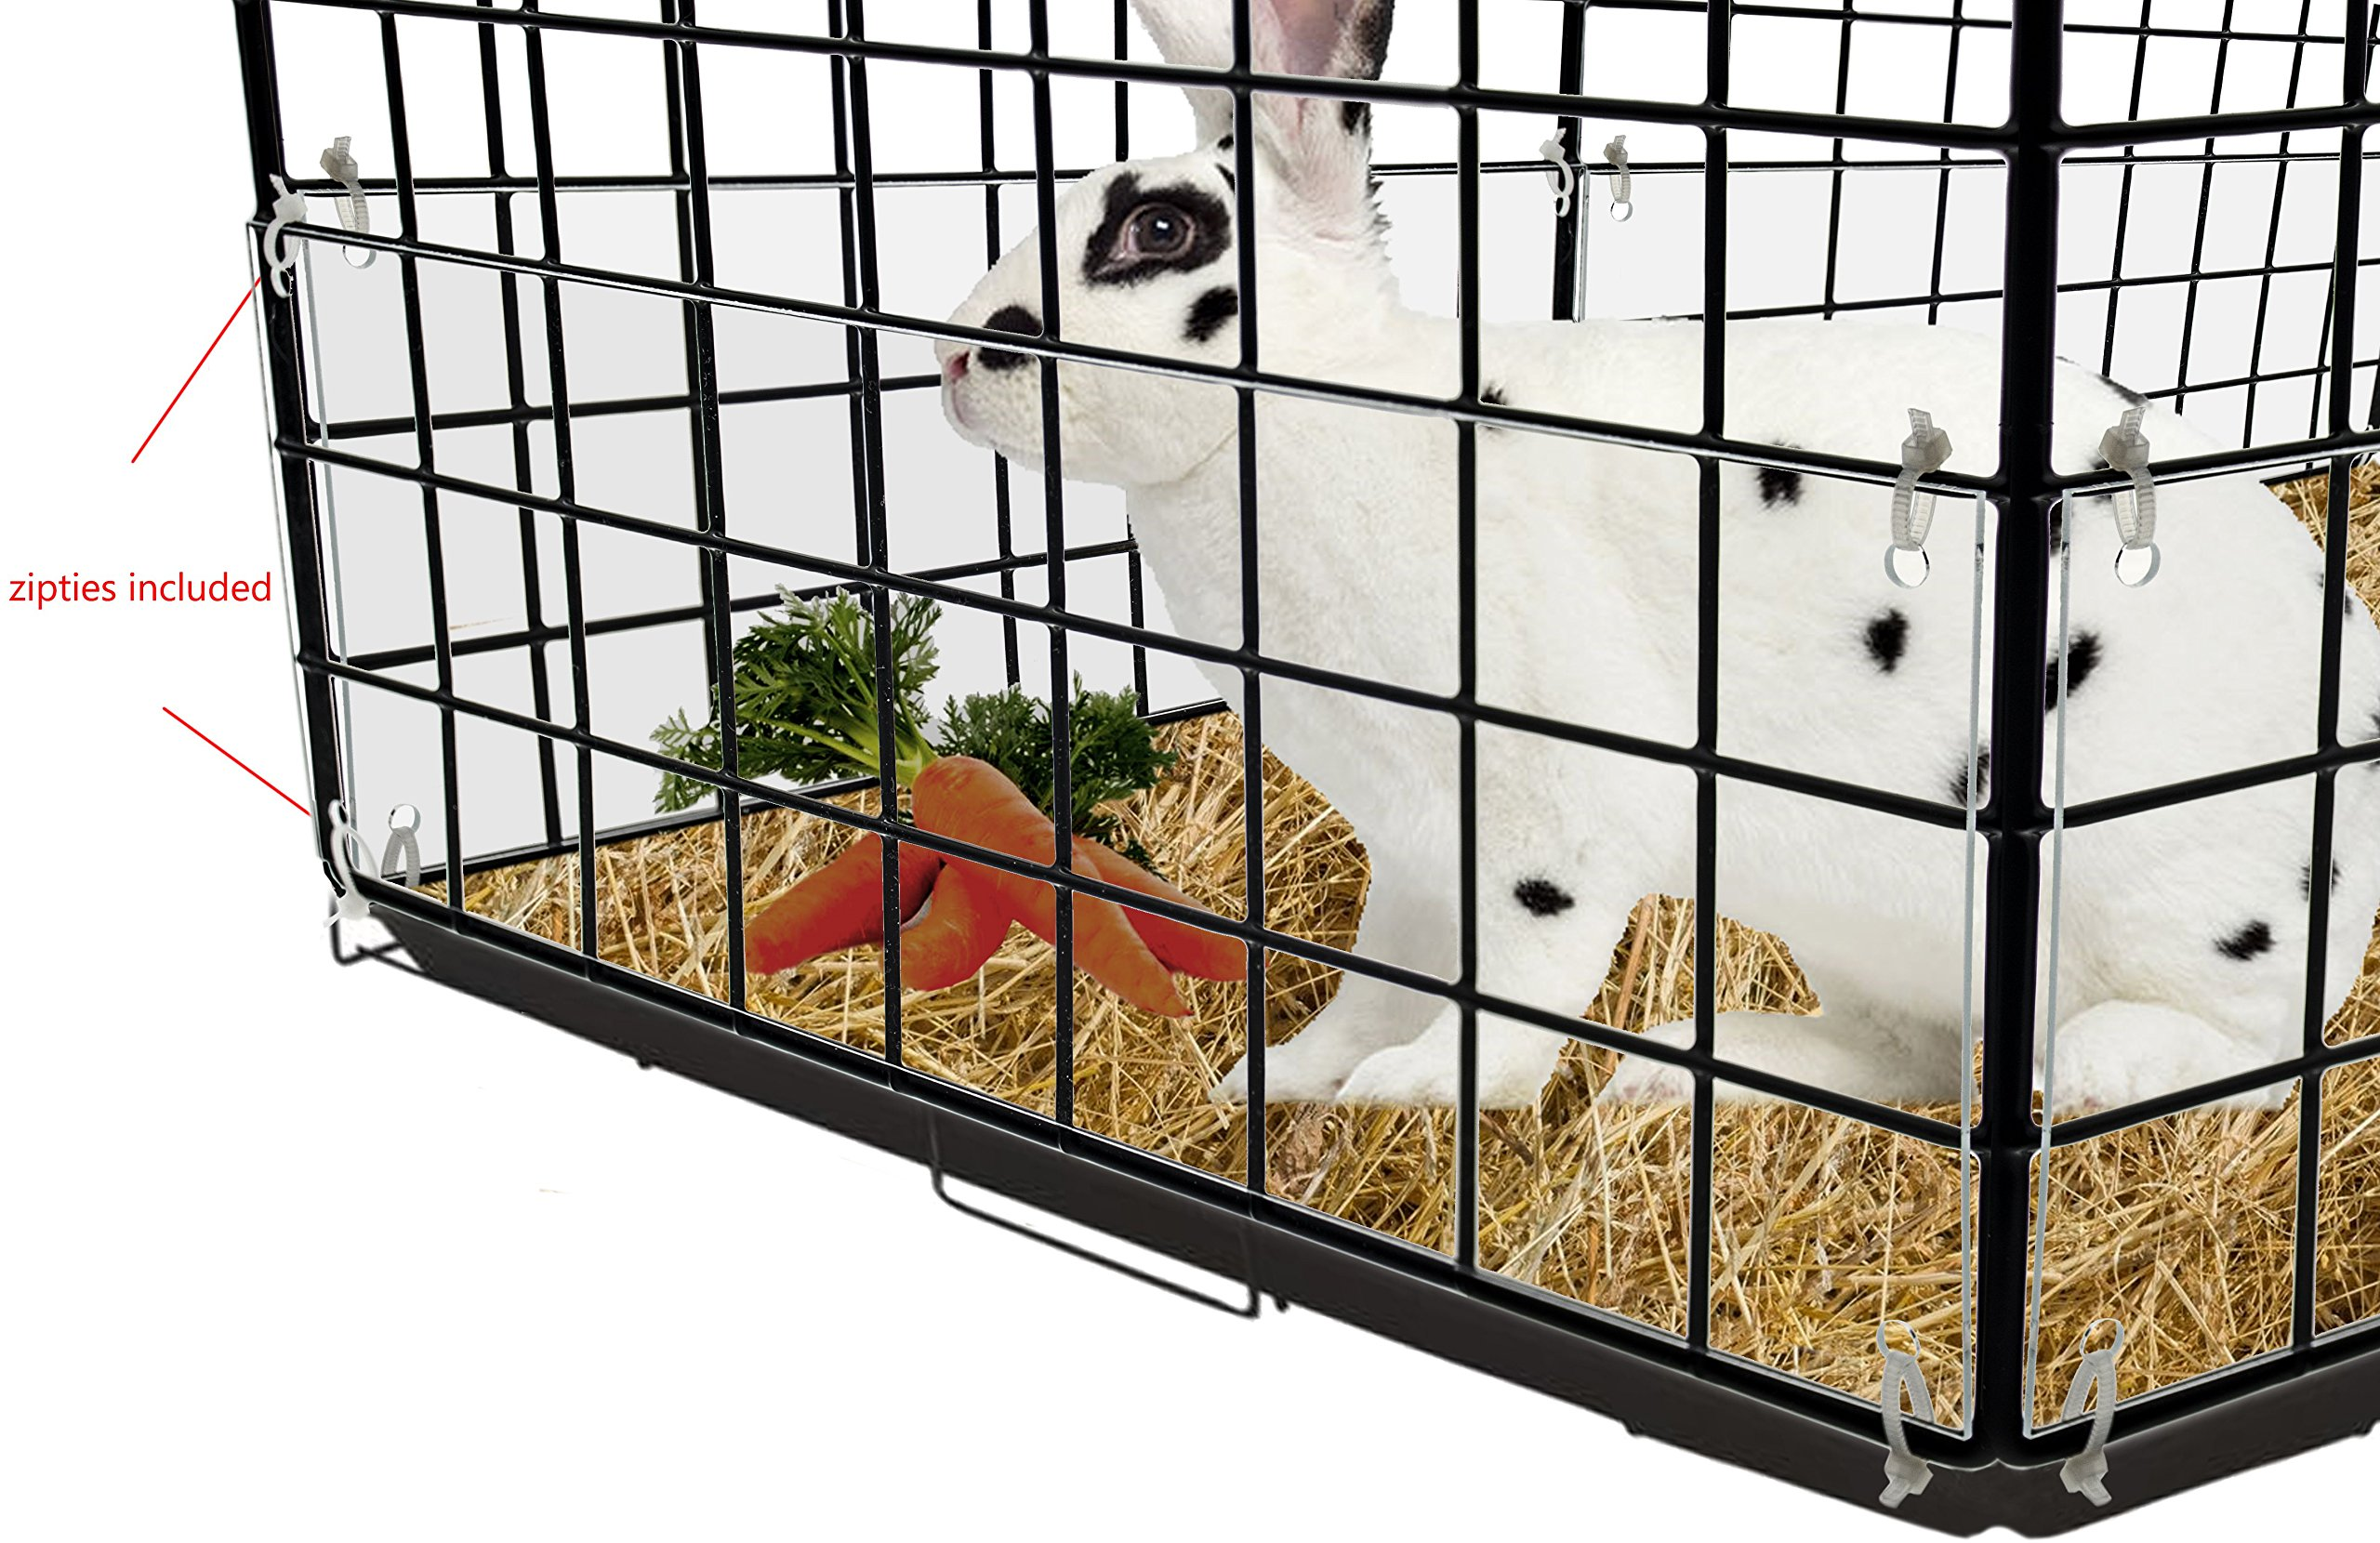 Marketing Holders Cage Edge Liner pet Rabbit & Guinea Pig cage Urine Guard Side Lining 2 Packs of 8 by Marketing Holders (Image #4)